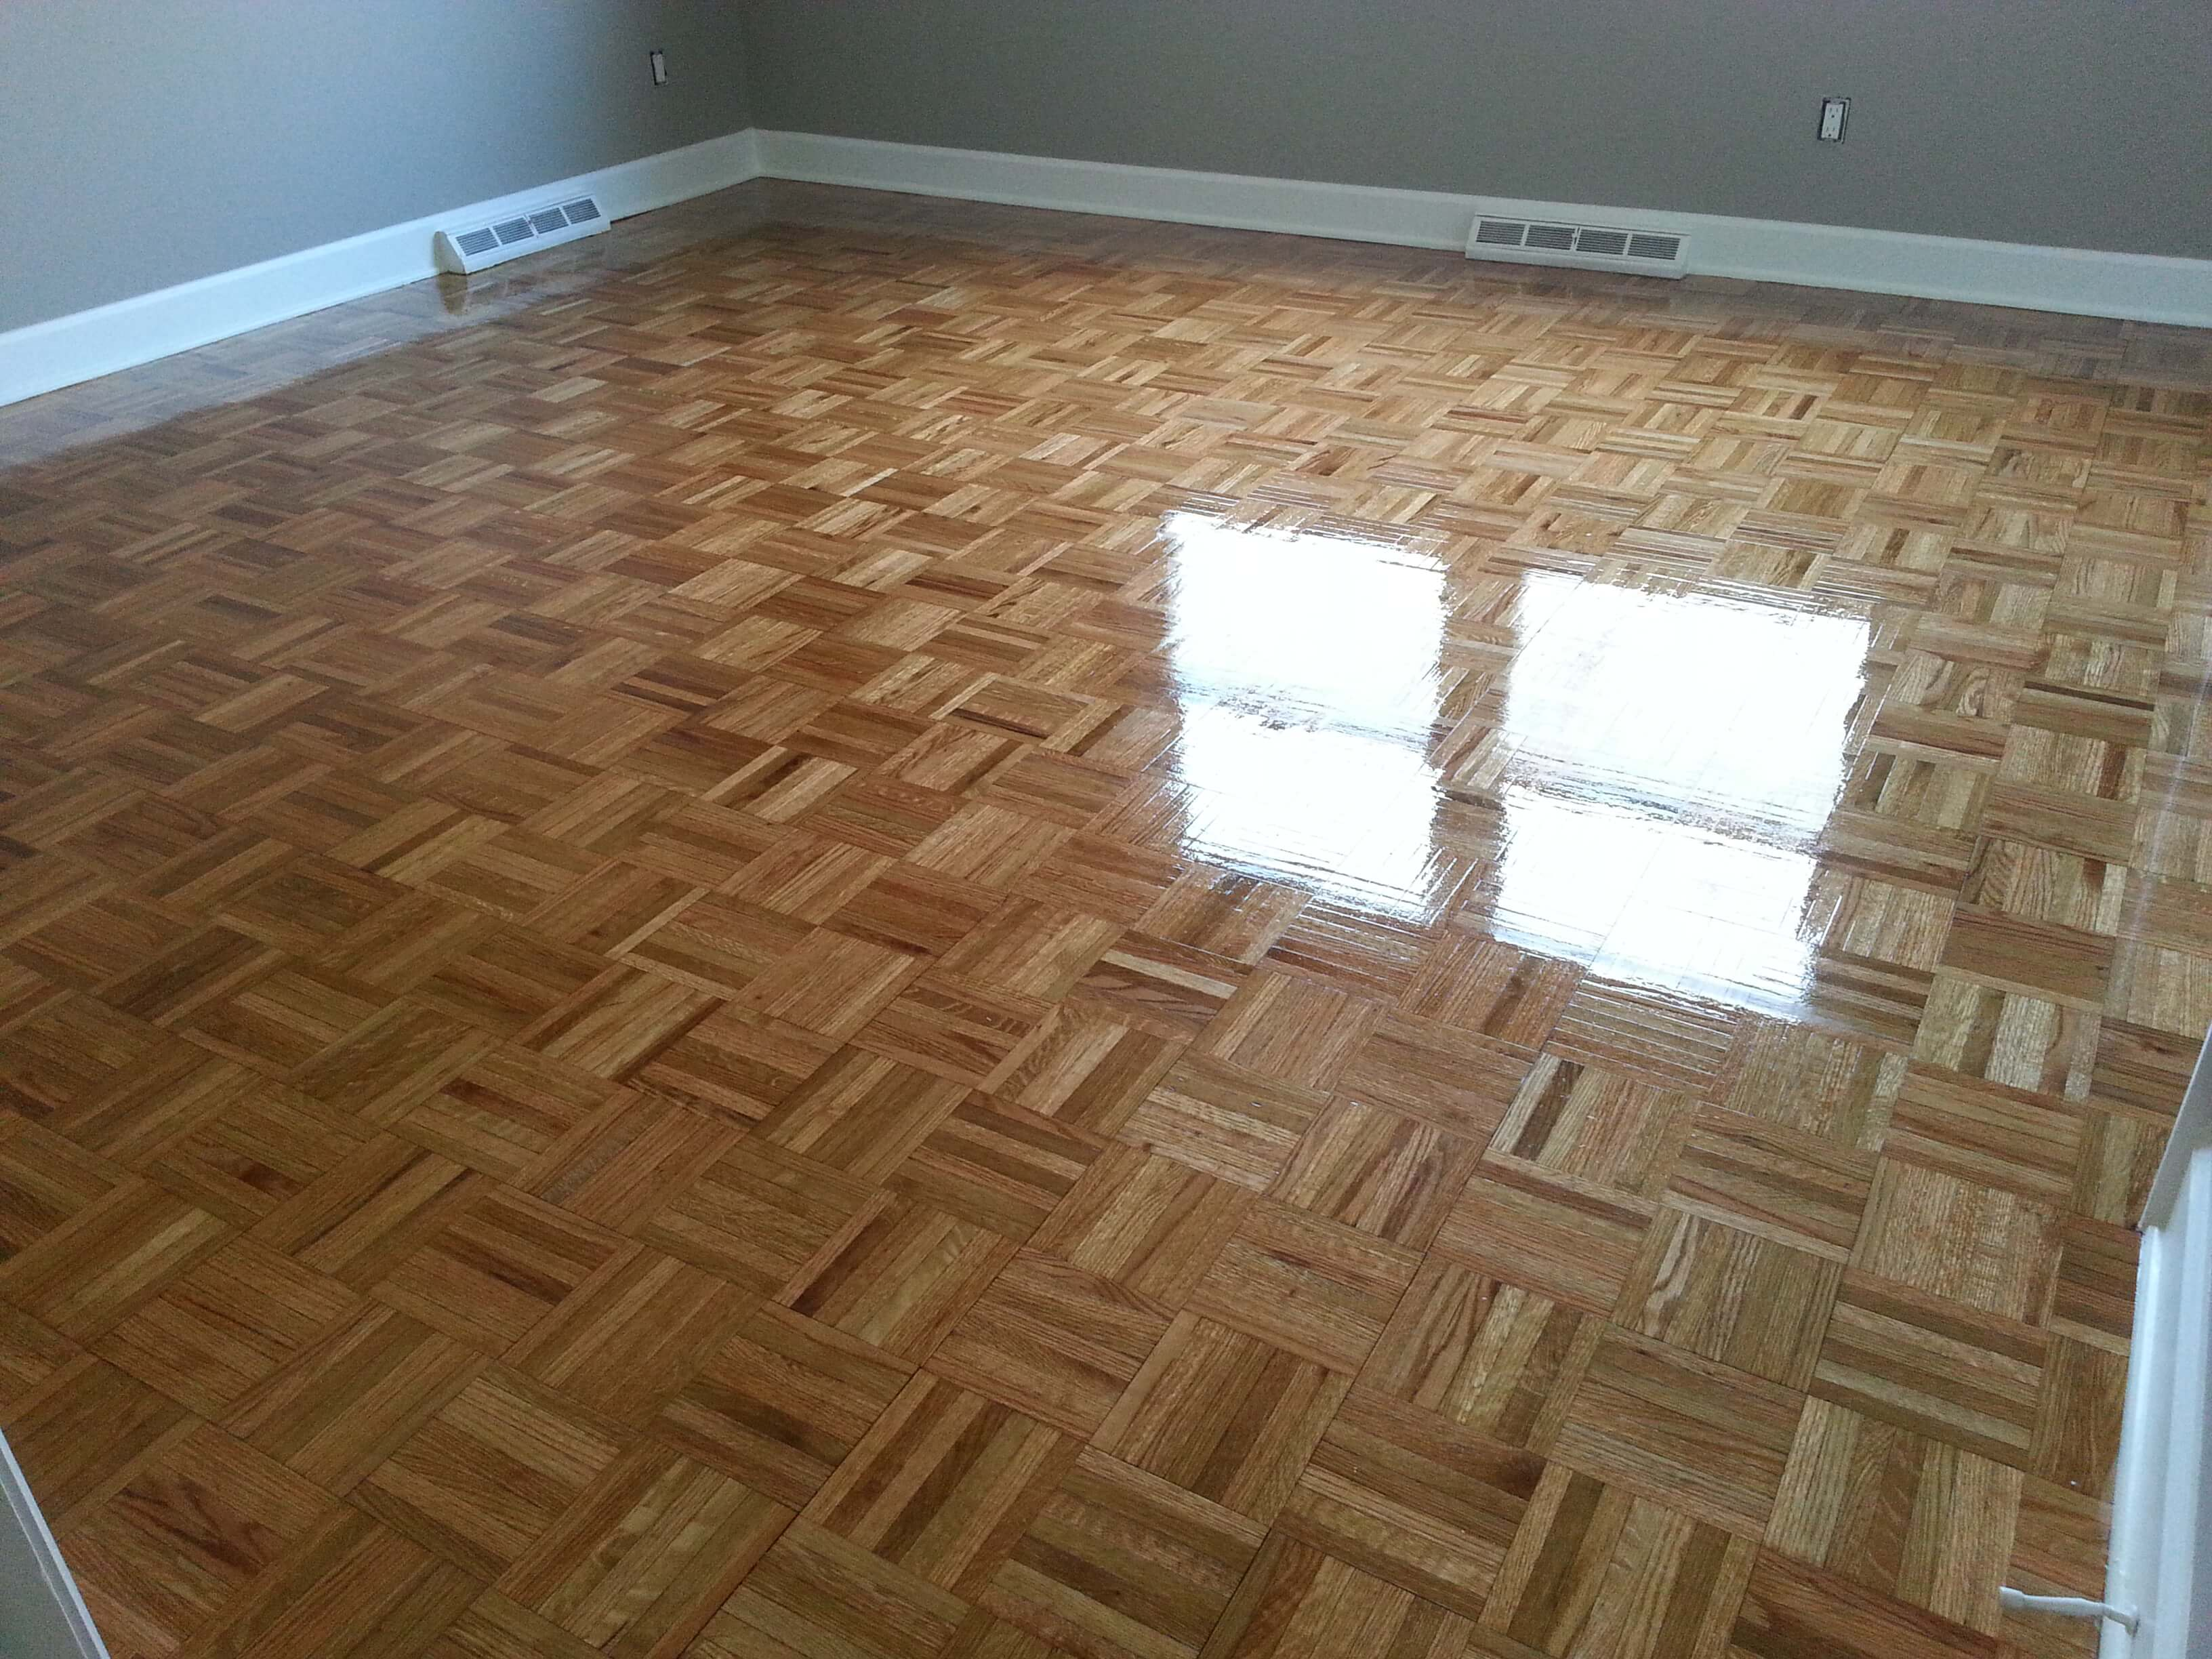 A refinished parquet hardwood floor